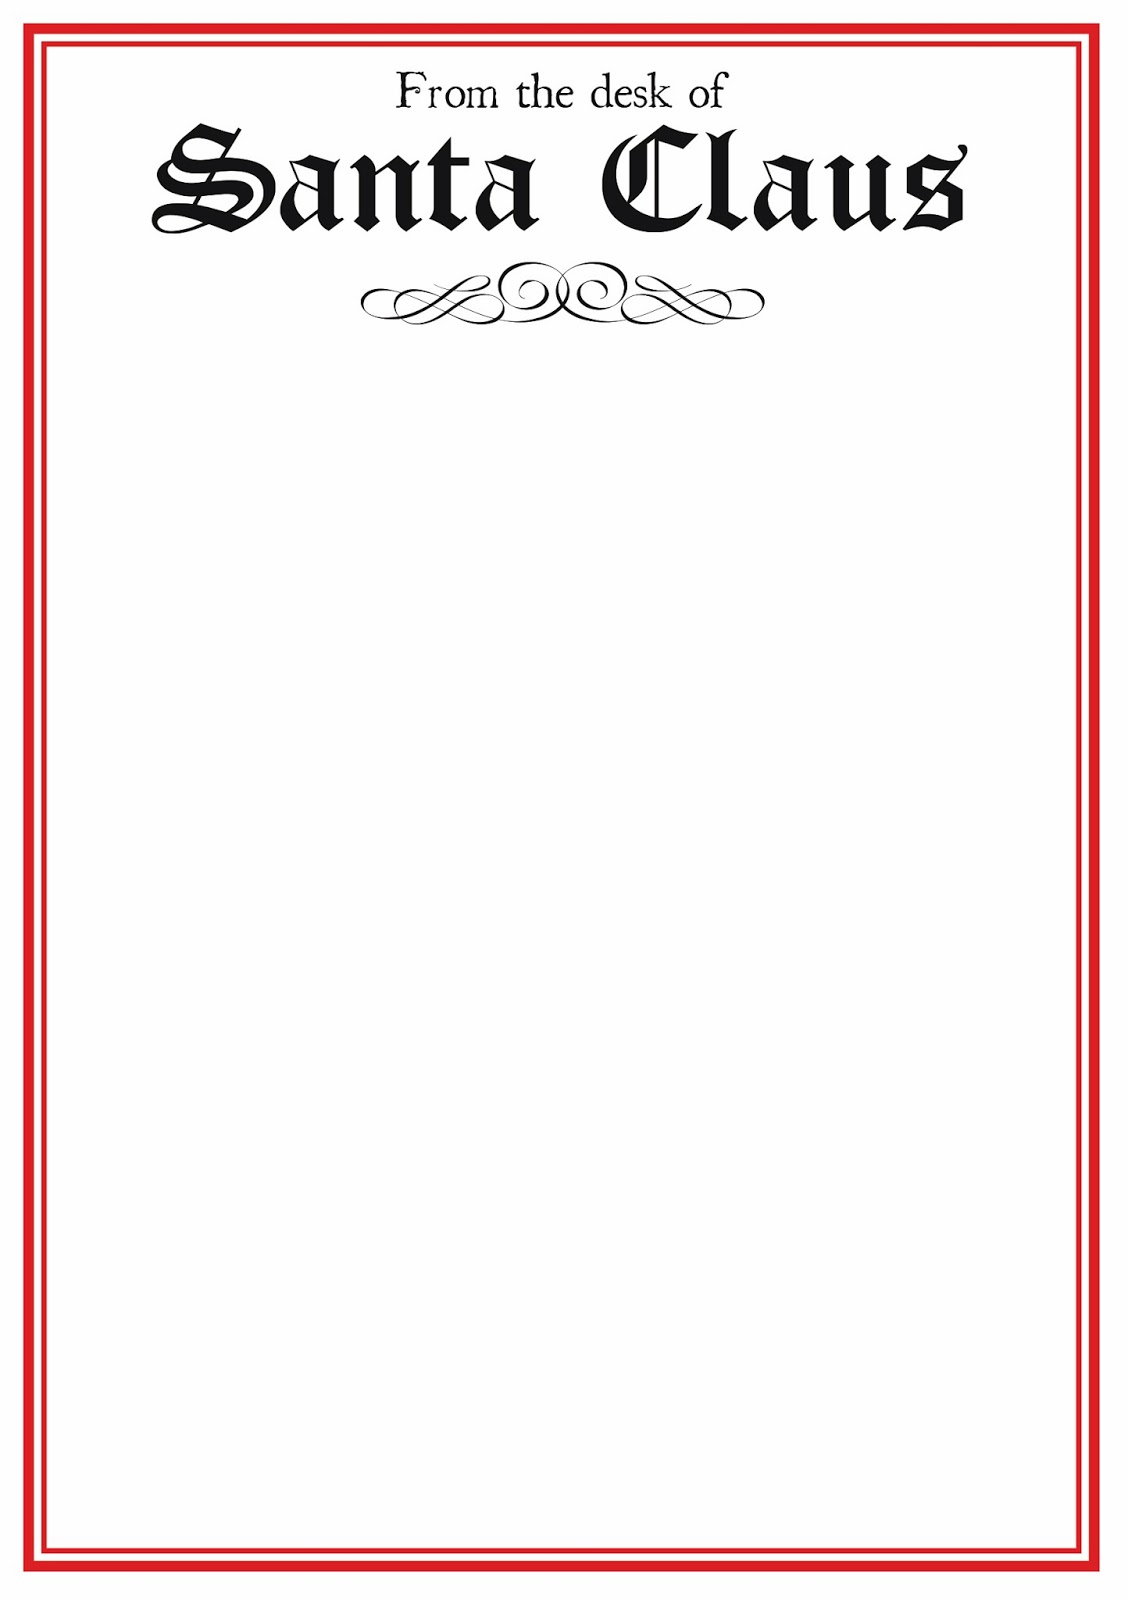 Free Printable Letter From Santa Template Word Download - Free Santa Templates Printable